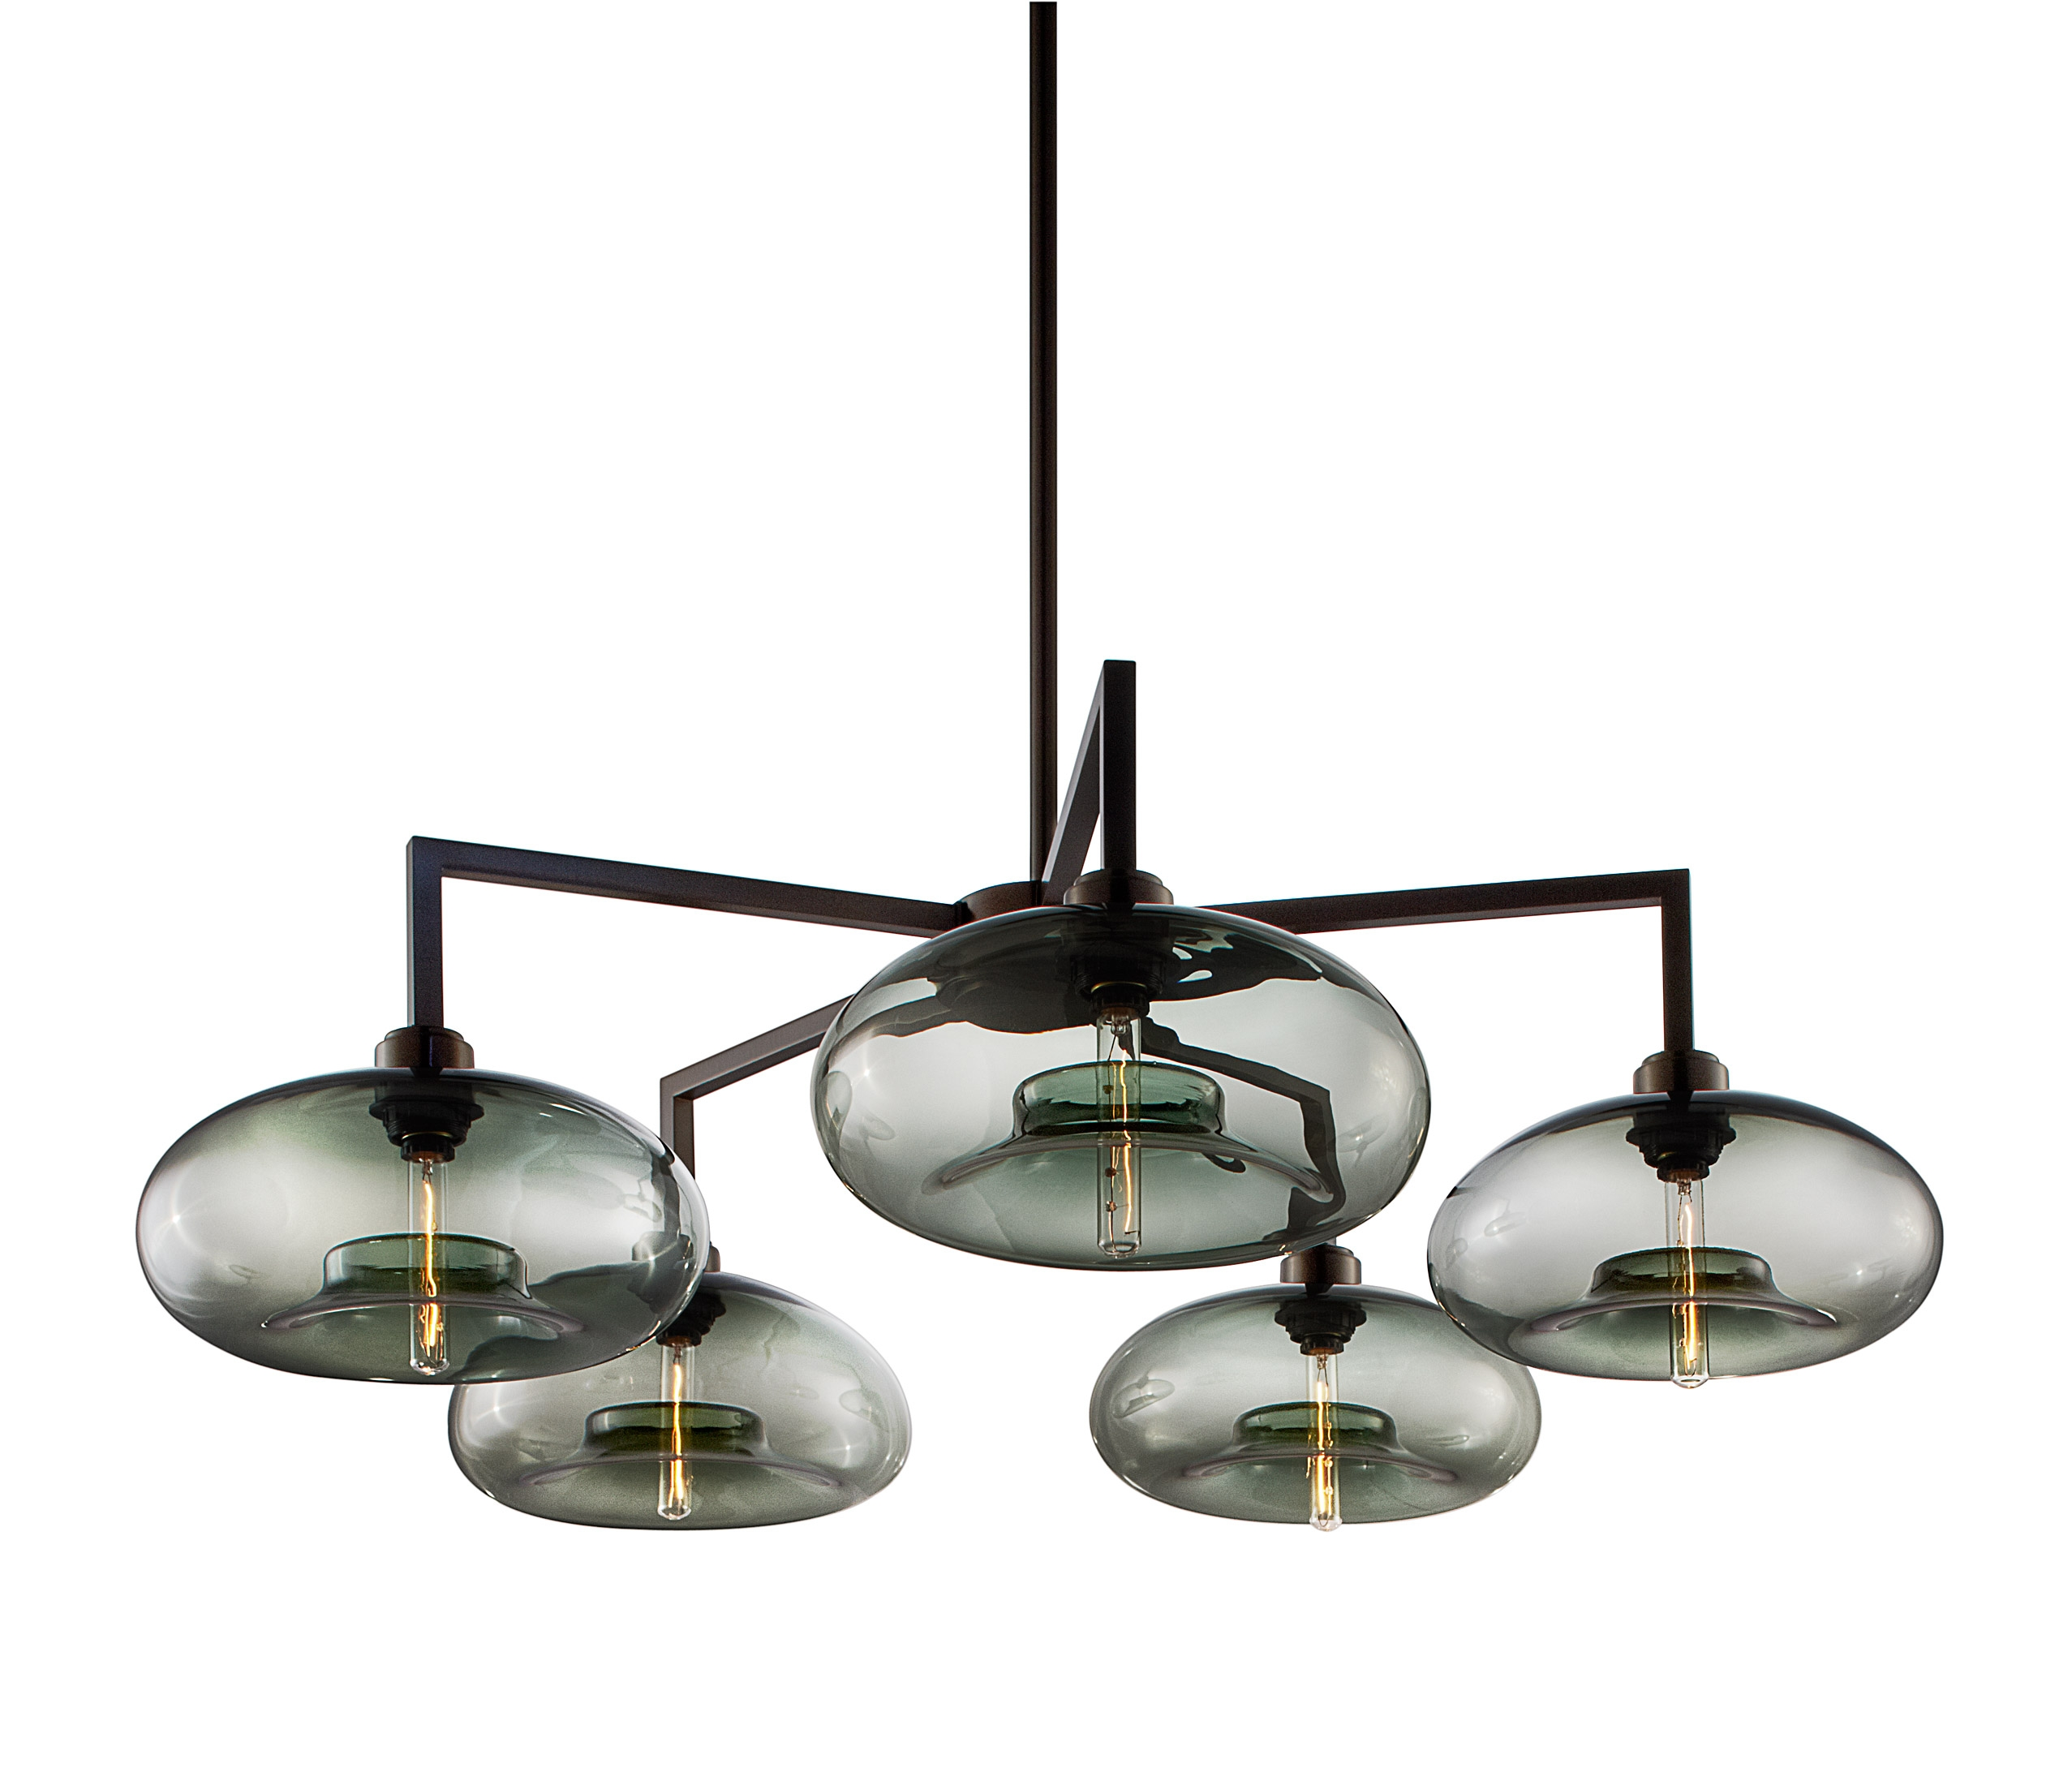 Quill 5 Modern Chandelier On Designer Pages Intended For Contemporary Chandelier (Image 15 of 15)